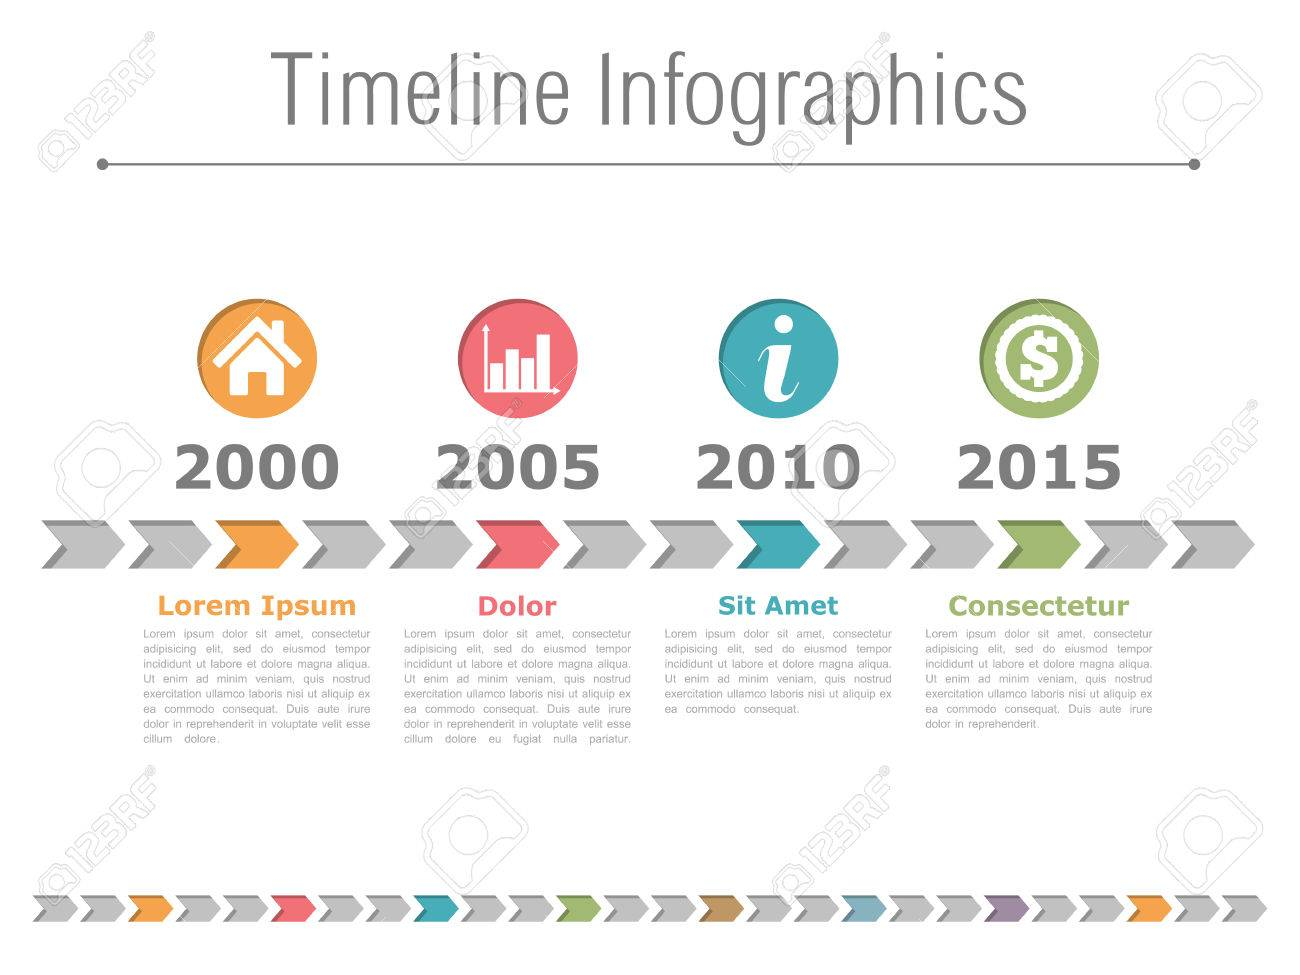 Timeline infographics design with colored arrows and icons in circles - 46911177